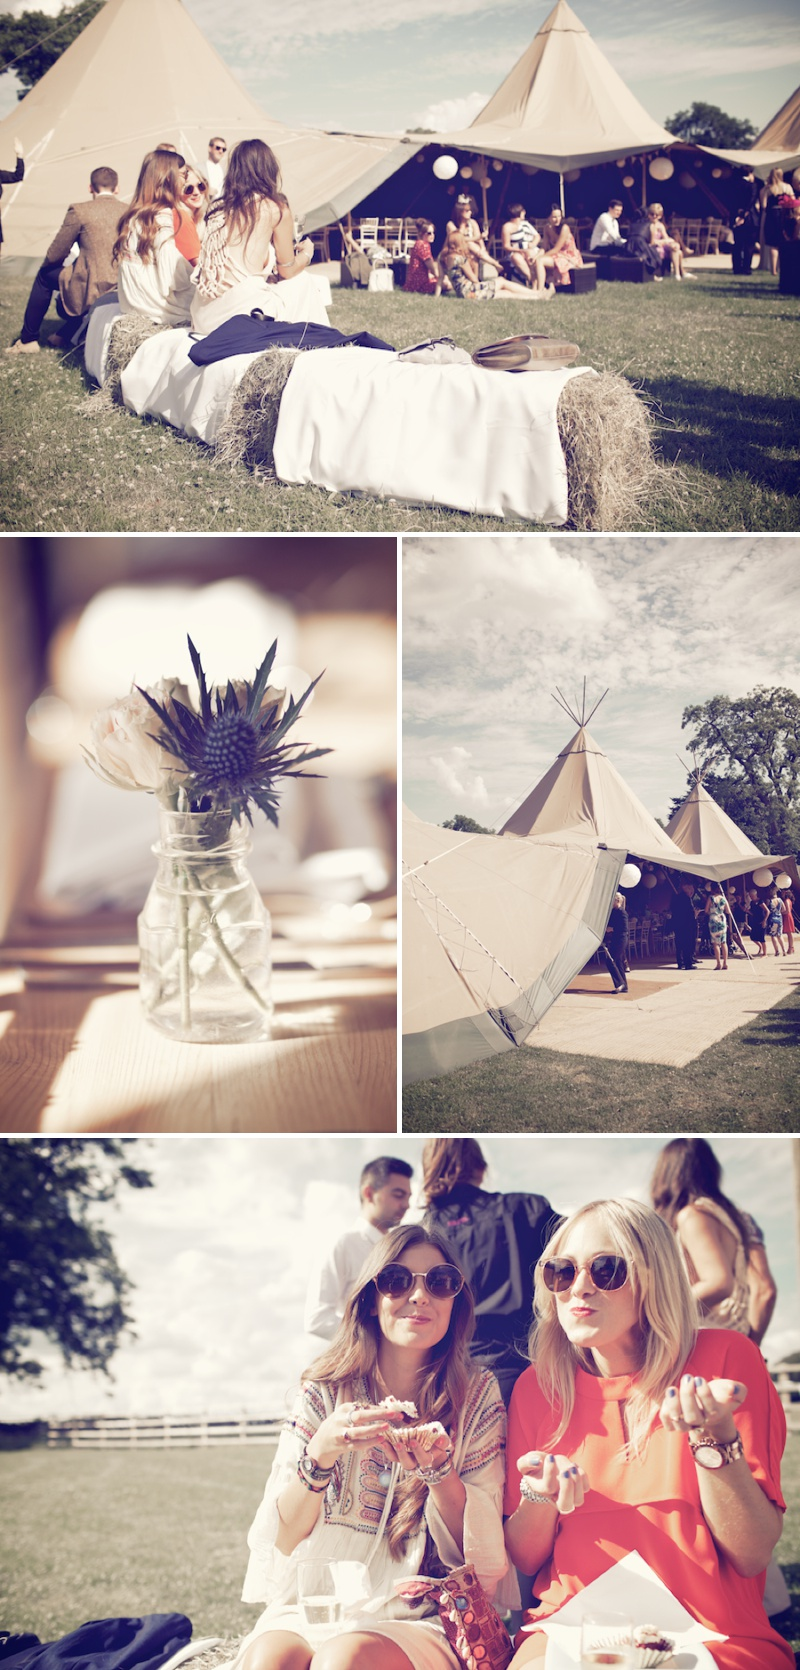 An Ethereal Bohemian Inspired Wedding At Standlow Farm With Tipis From Papakata, A David Fielden Dress And Juliet Cap Veil With A Sweet Avalanche Rose Bouquet 9